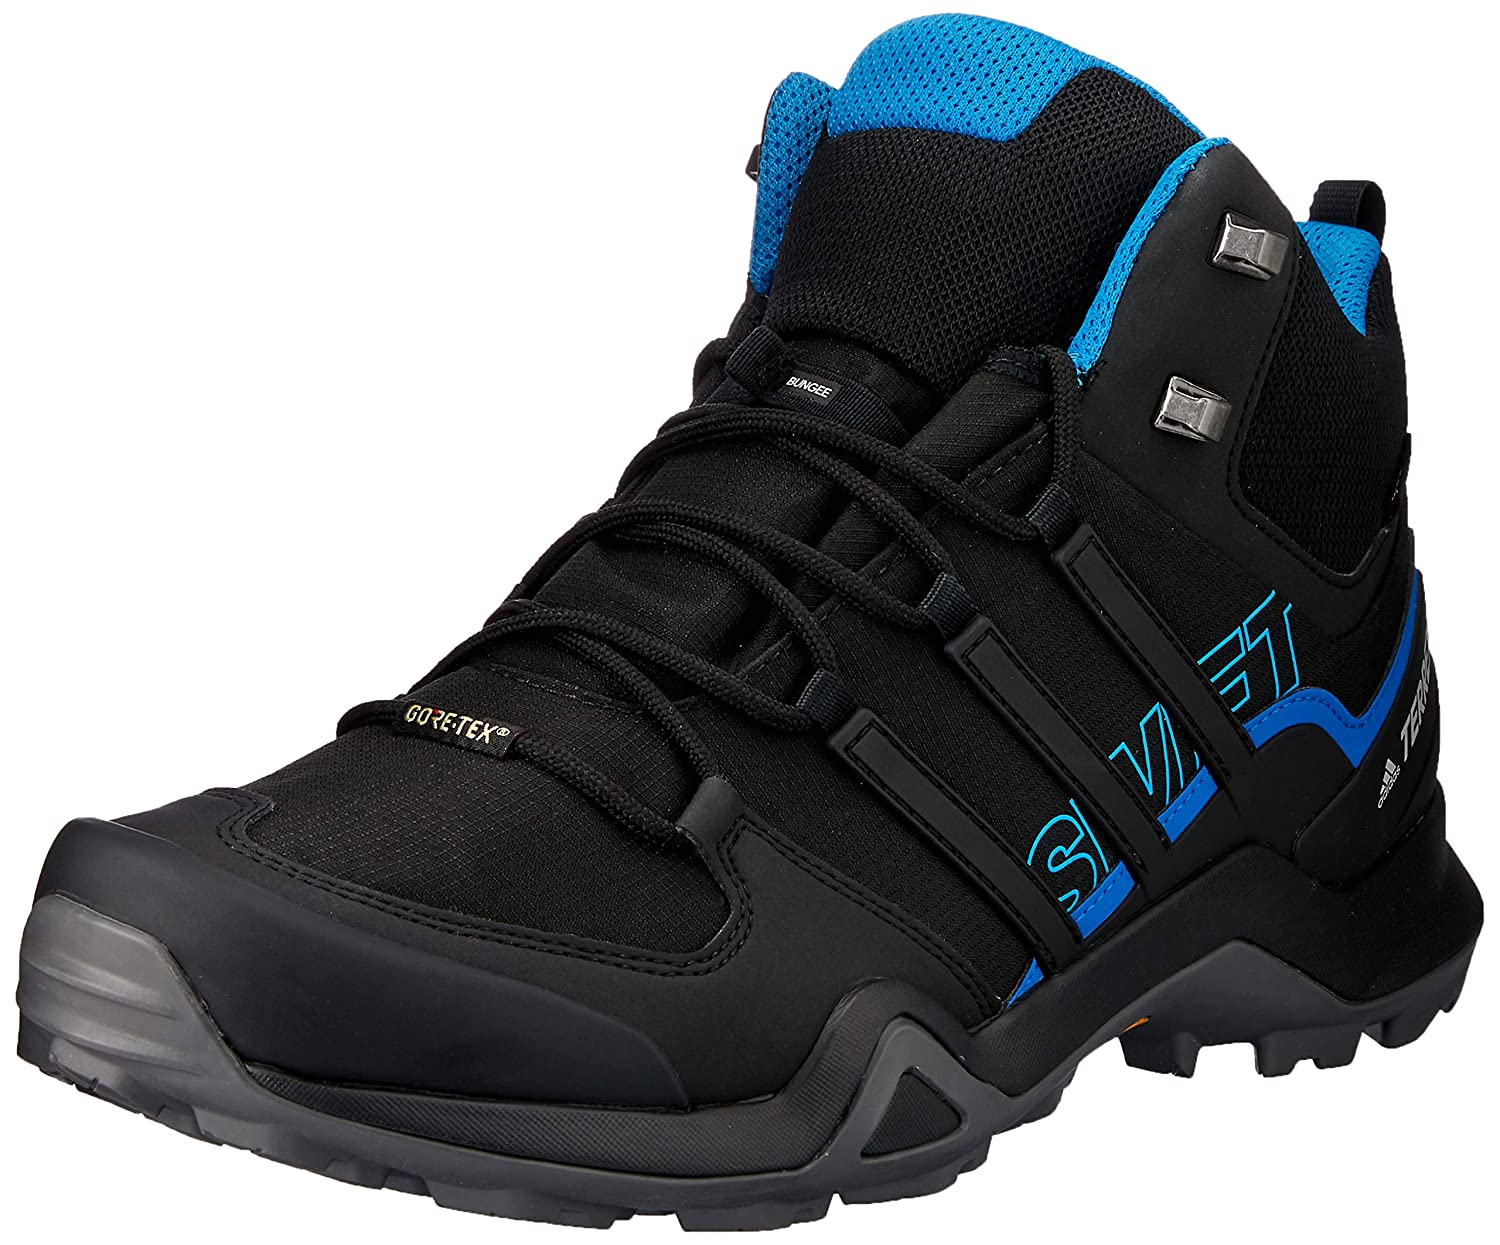 adidas Australia Men's Terrex Swift R2 Mid GTX Hikings Boots ...